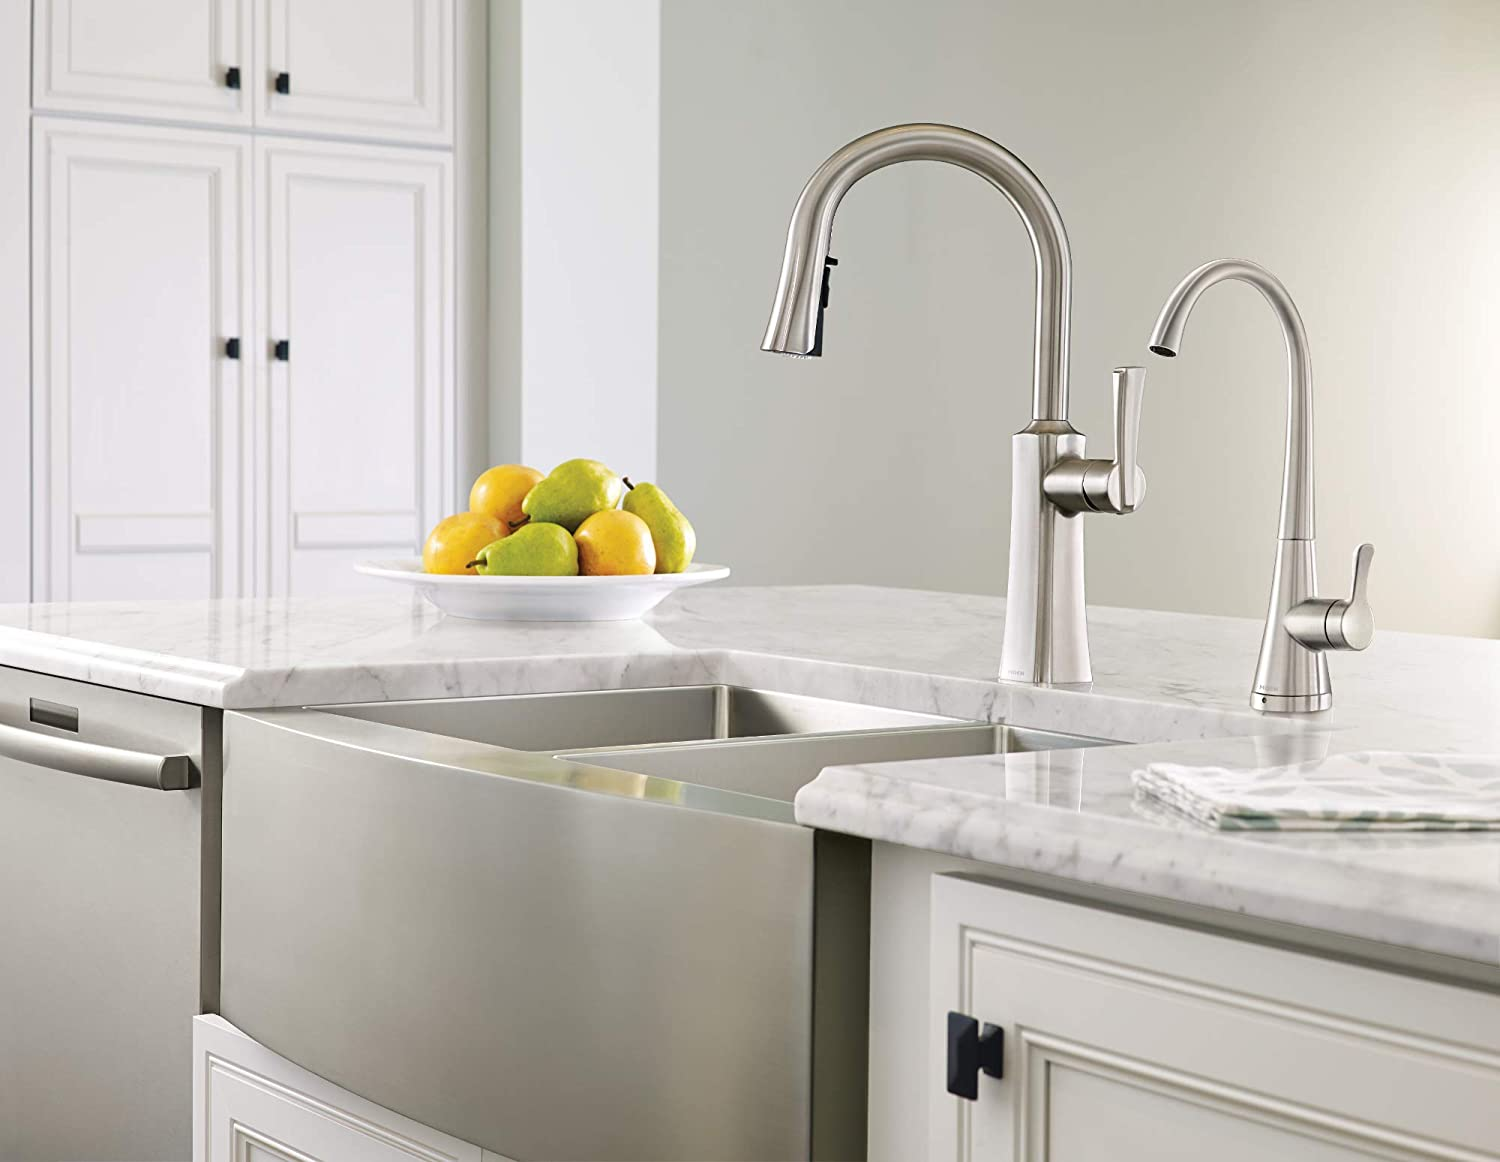 Moen S5520SRS Sip Transitional One-Handle High-Arc Beverage Faucet Spot Resist Stainless